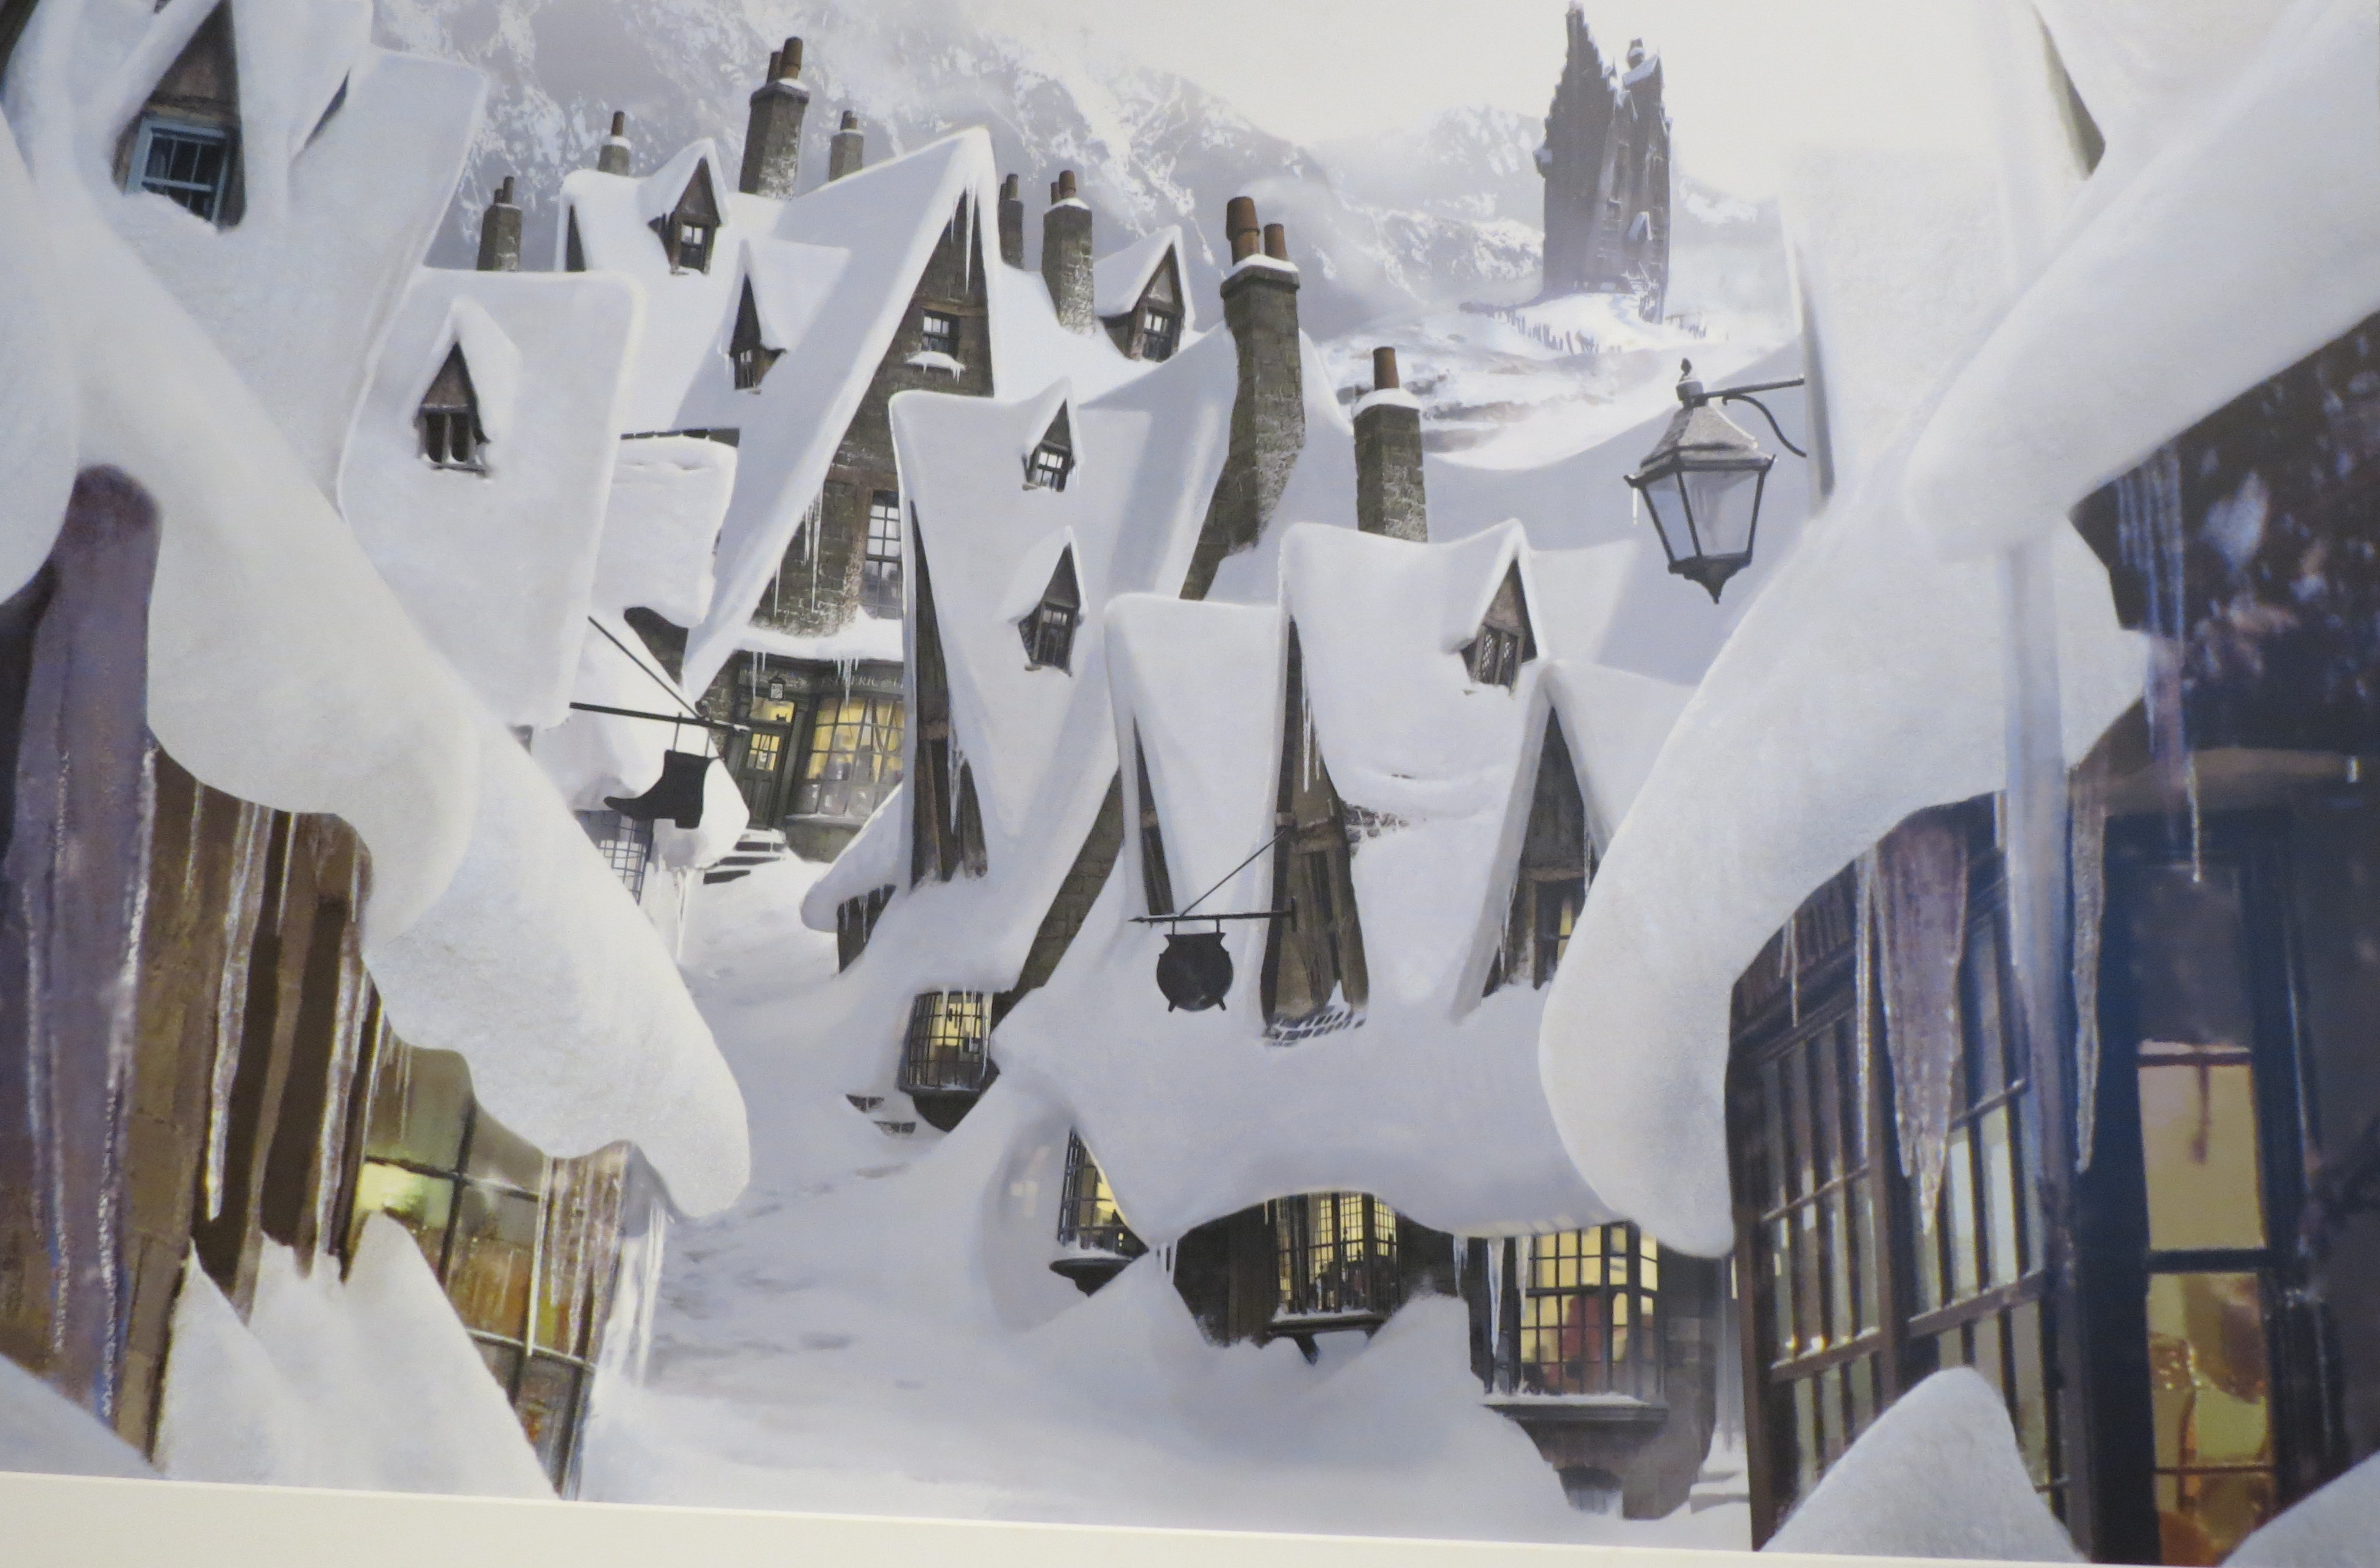 concept_artist_dermot_power_harry_potter_films_wb_by_sceptre63-d8gjffw.jpg